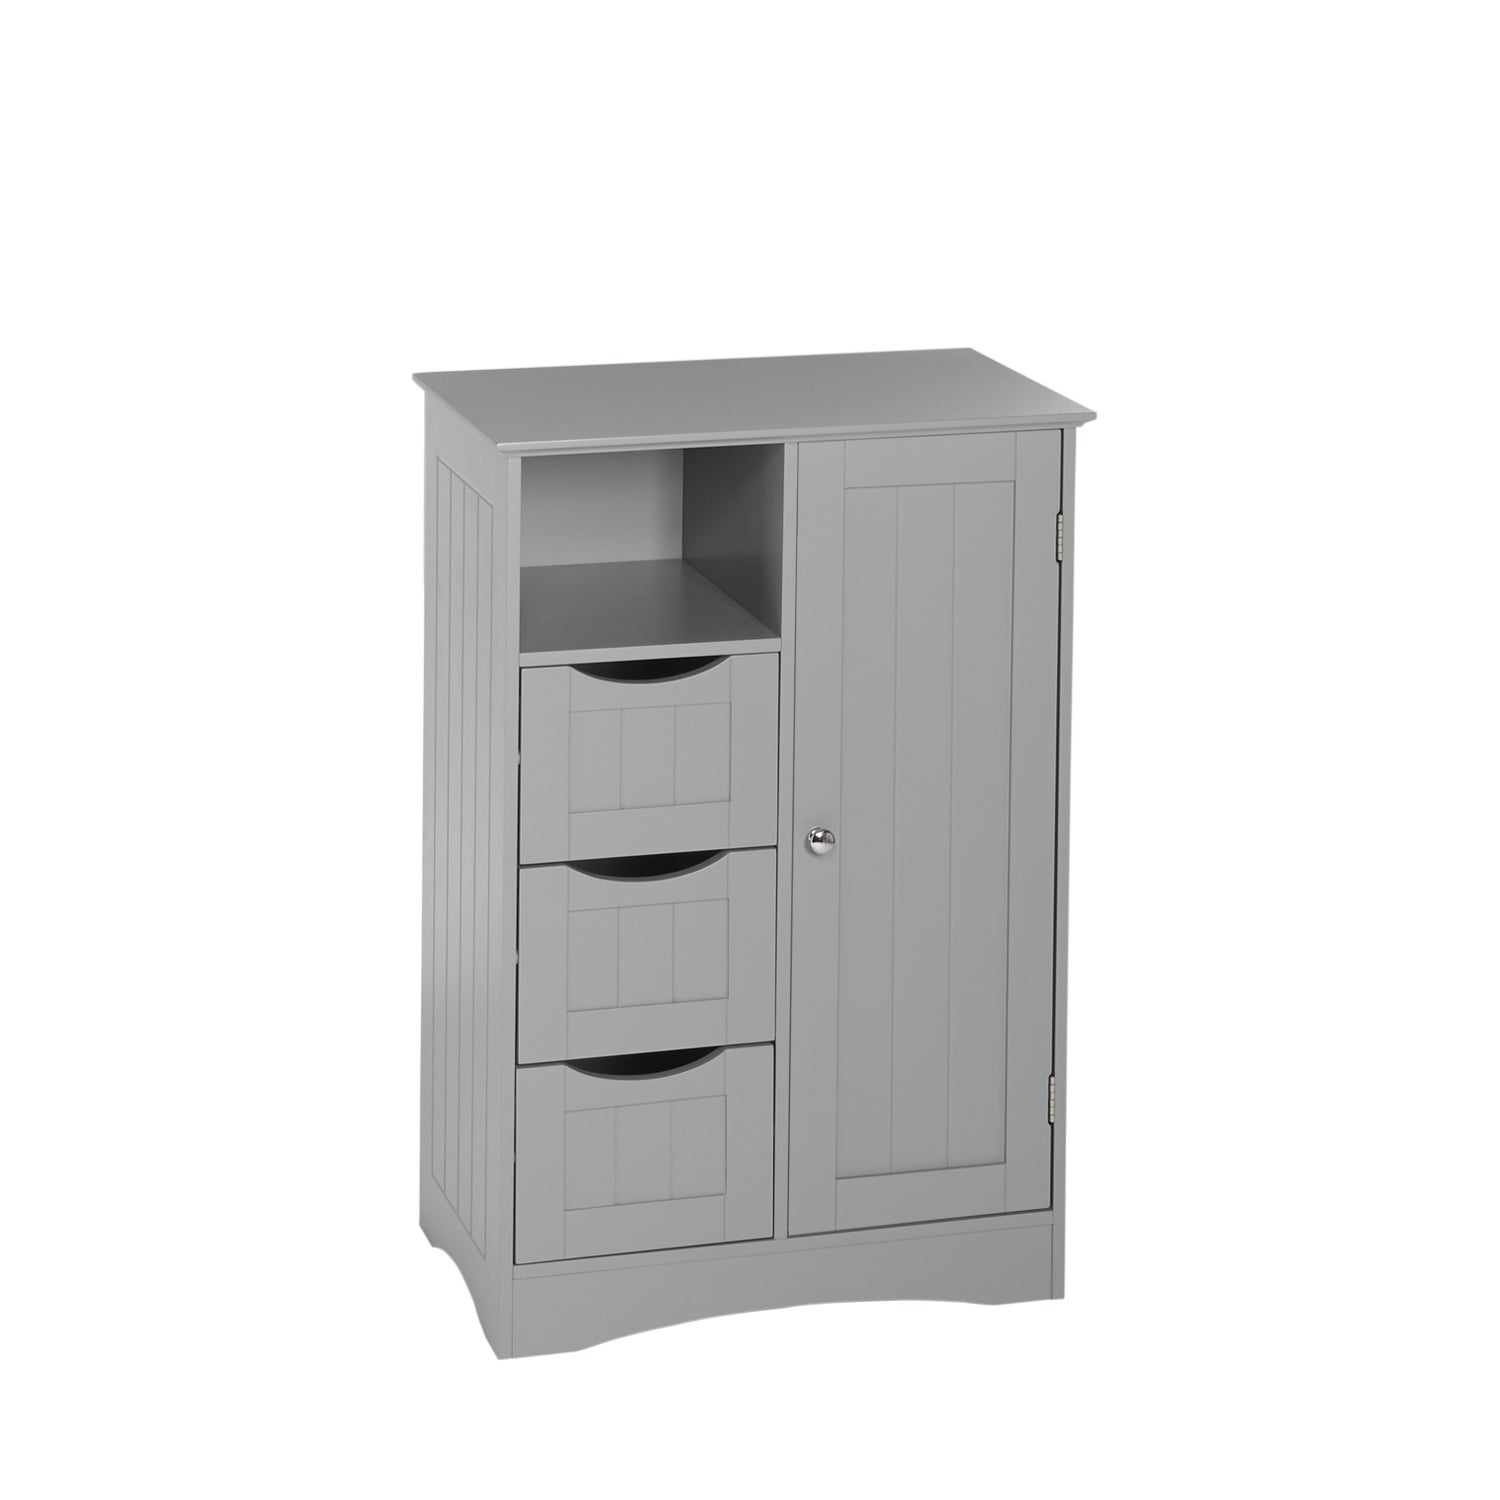 RiverRidge Home Products Ashland Collection Painted 1 Door 3 Drawer Floor  Cabinet